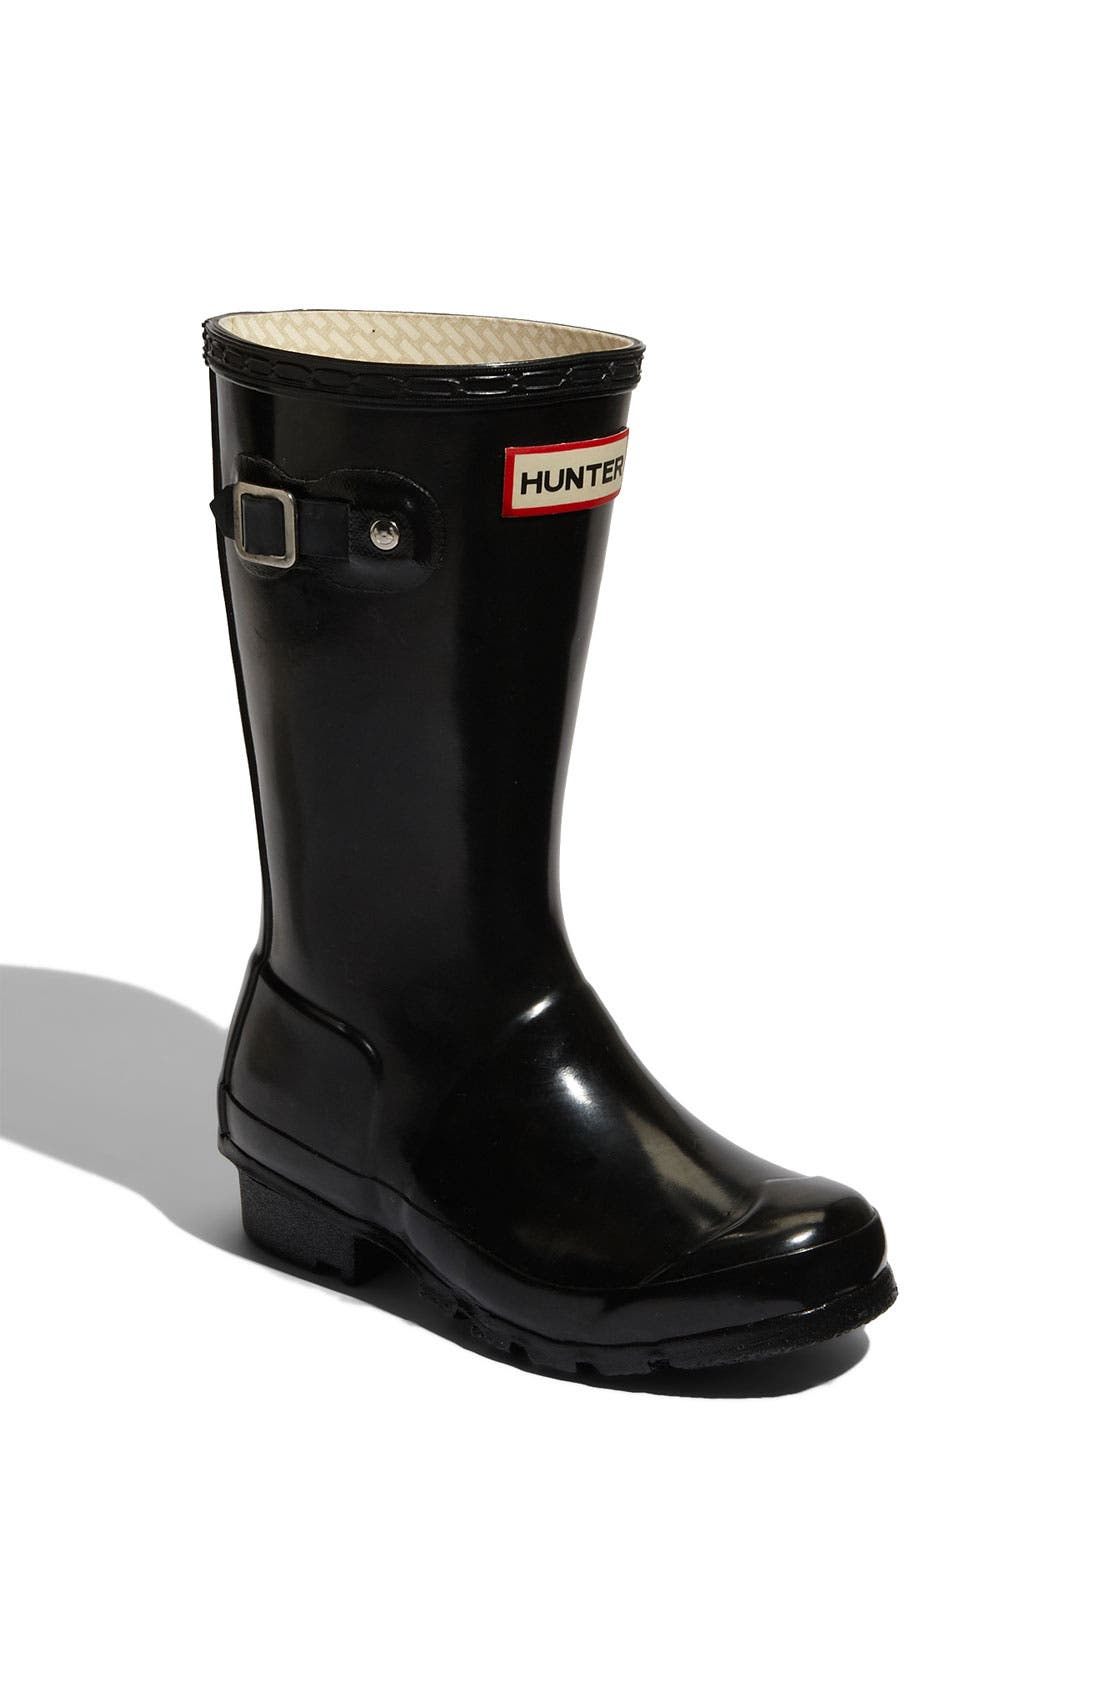 Alternate Image 1 Selected - Hunter 'Original Gloss' Rain Boot (Little Kid & Big Kid)